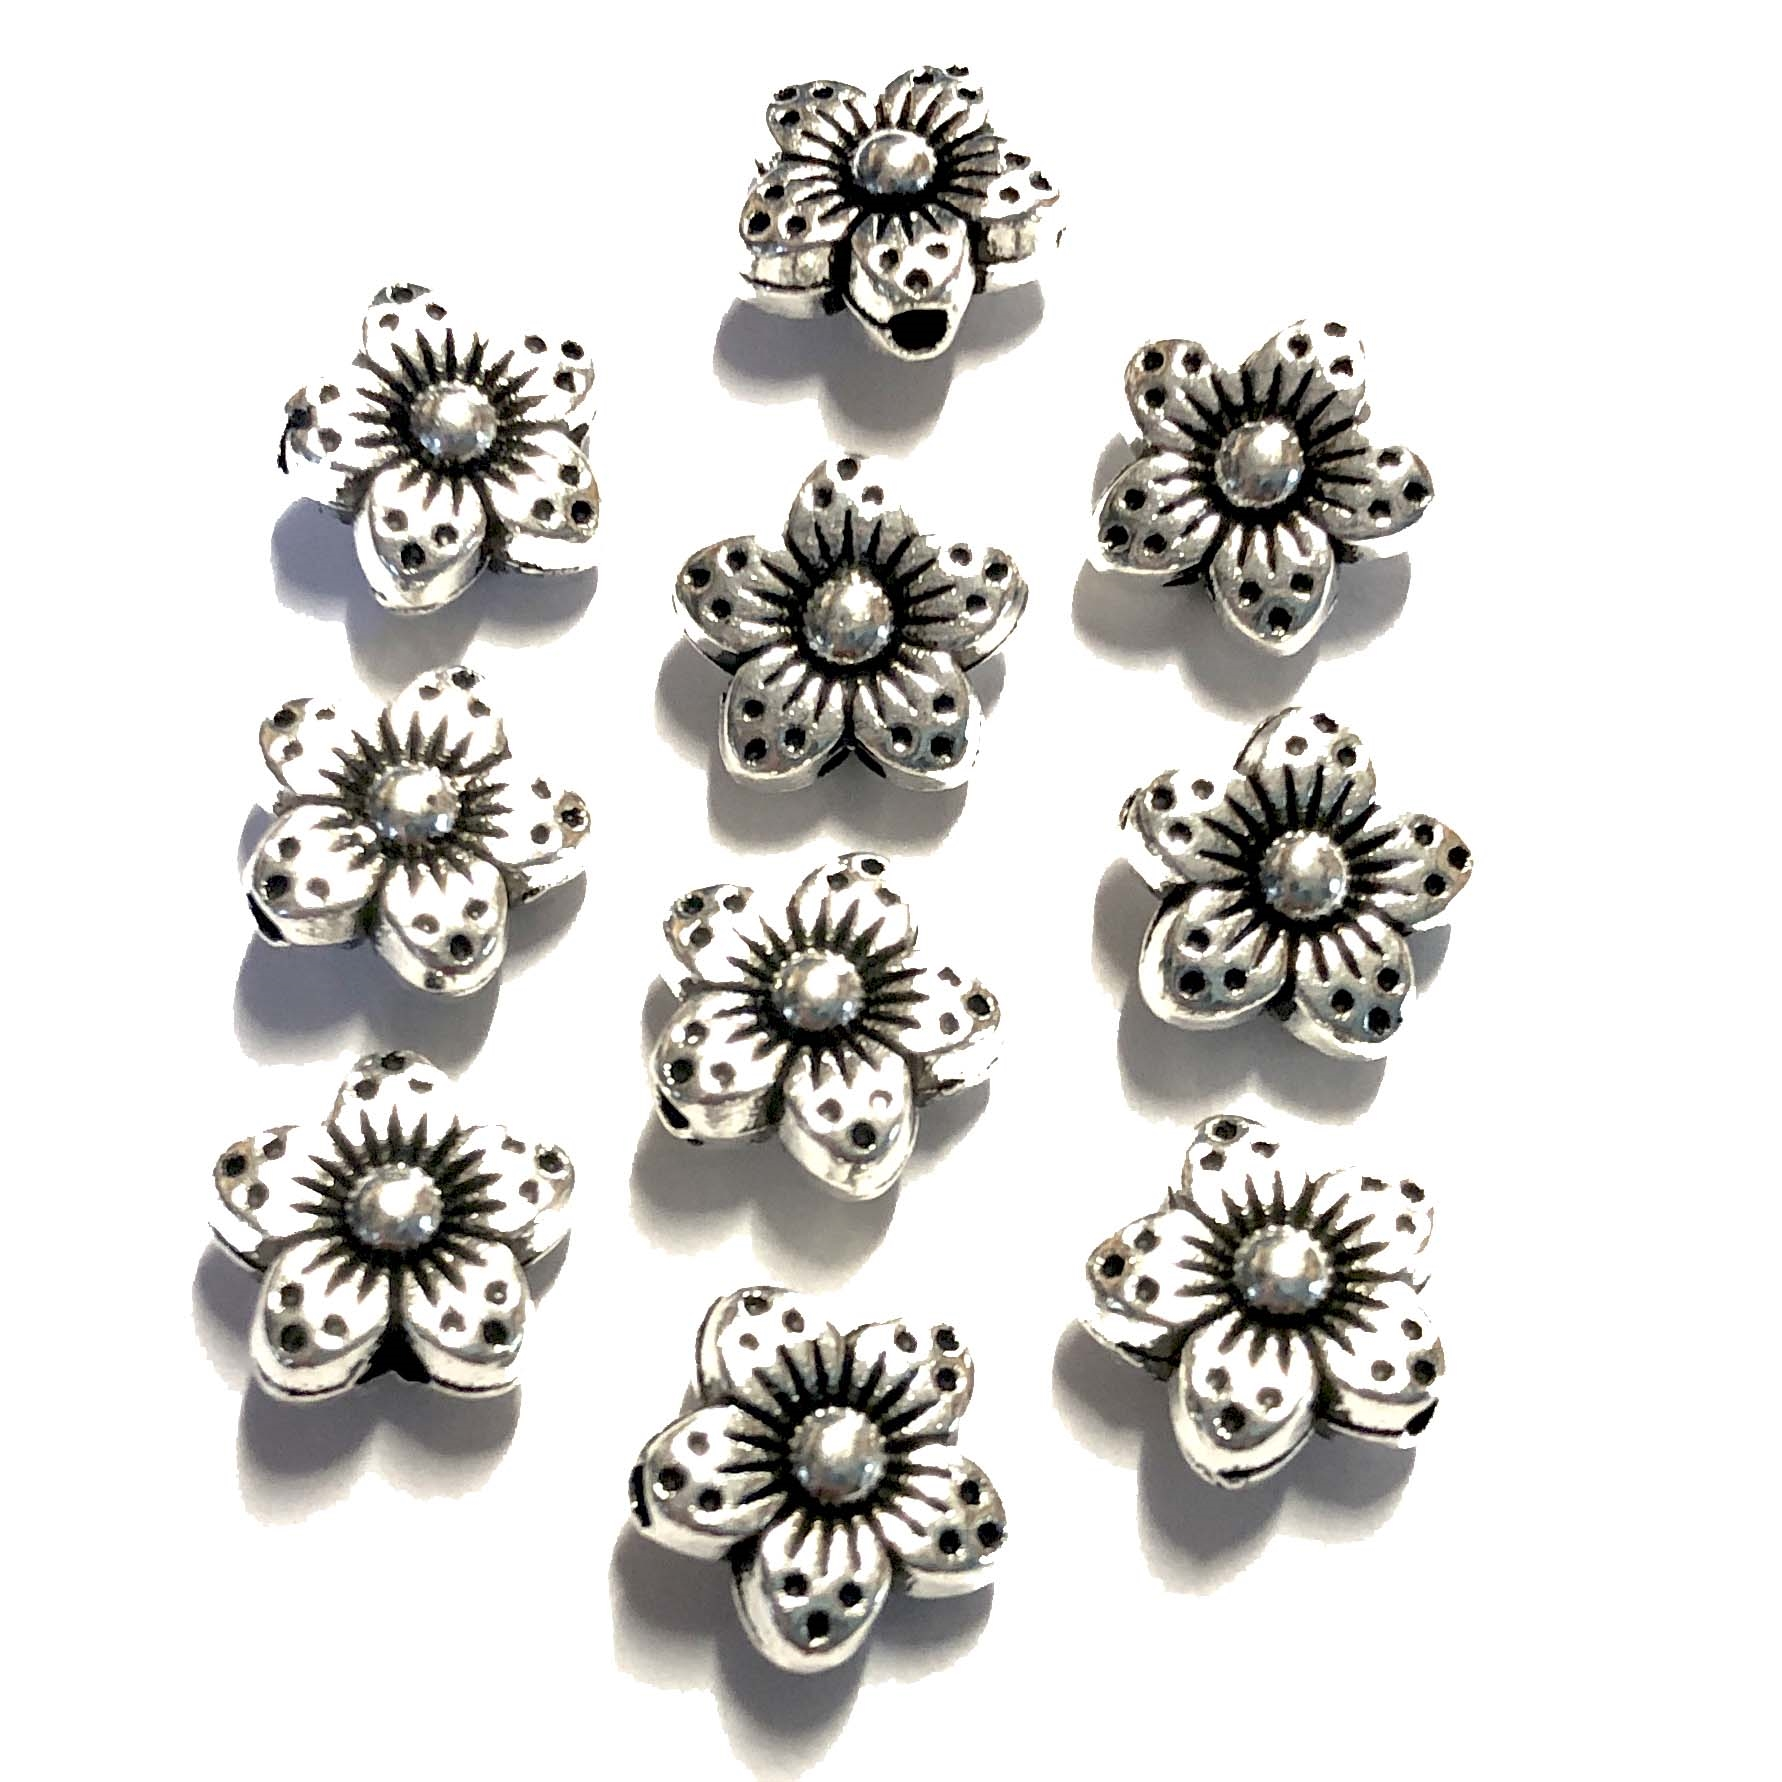 zinc alloy beads, flower beads, antique silver, 08875, vintage jewelry supplies, beading supplies, jewelry making supplies, B'sue Boutiques, jewelry supplies, silver plate beads, antique silver beads, side drilled beads